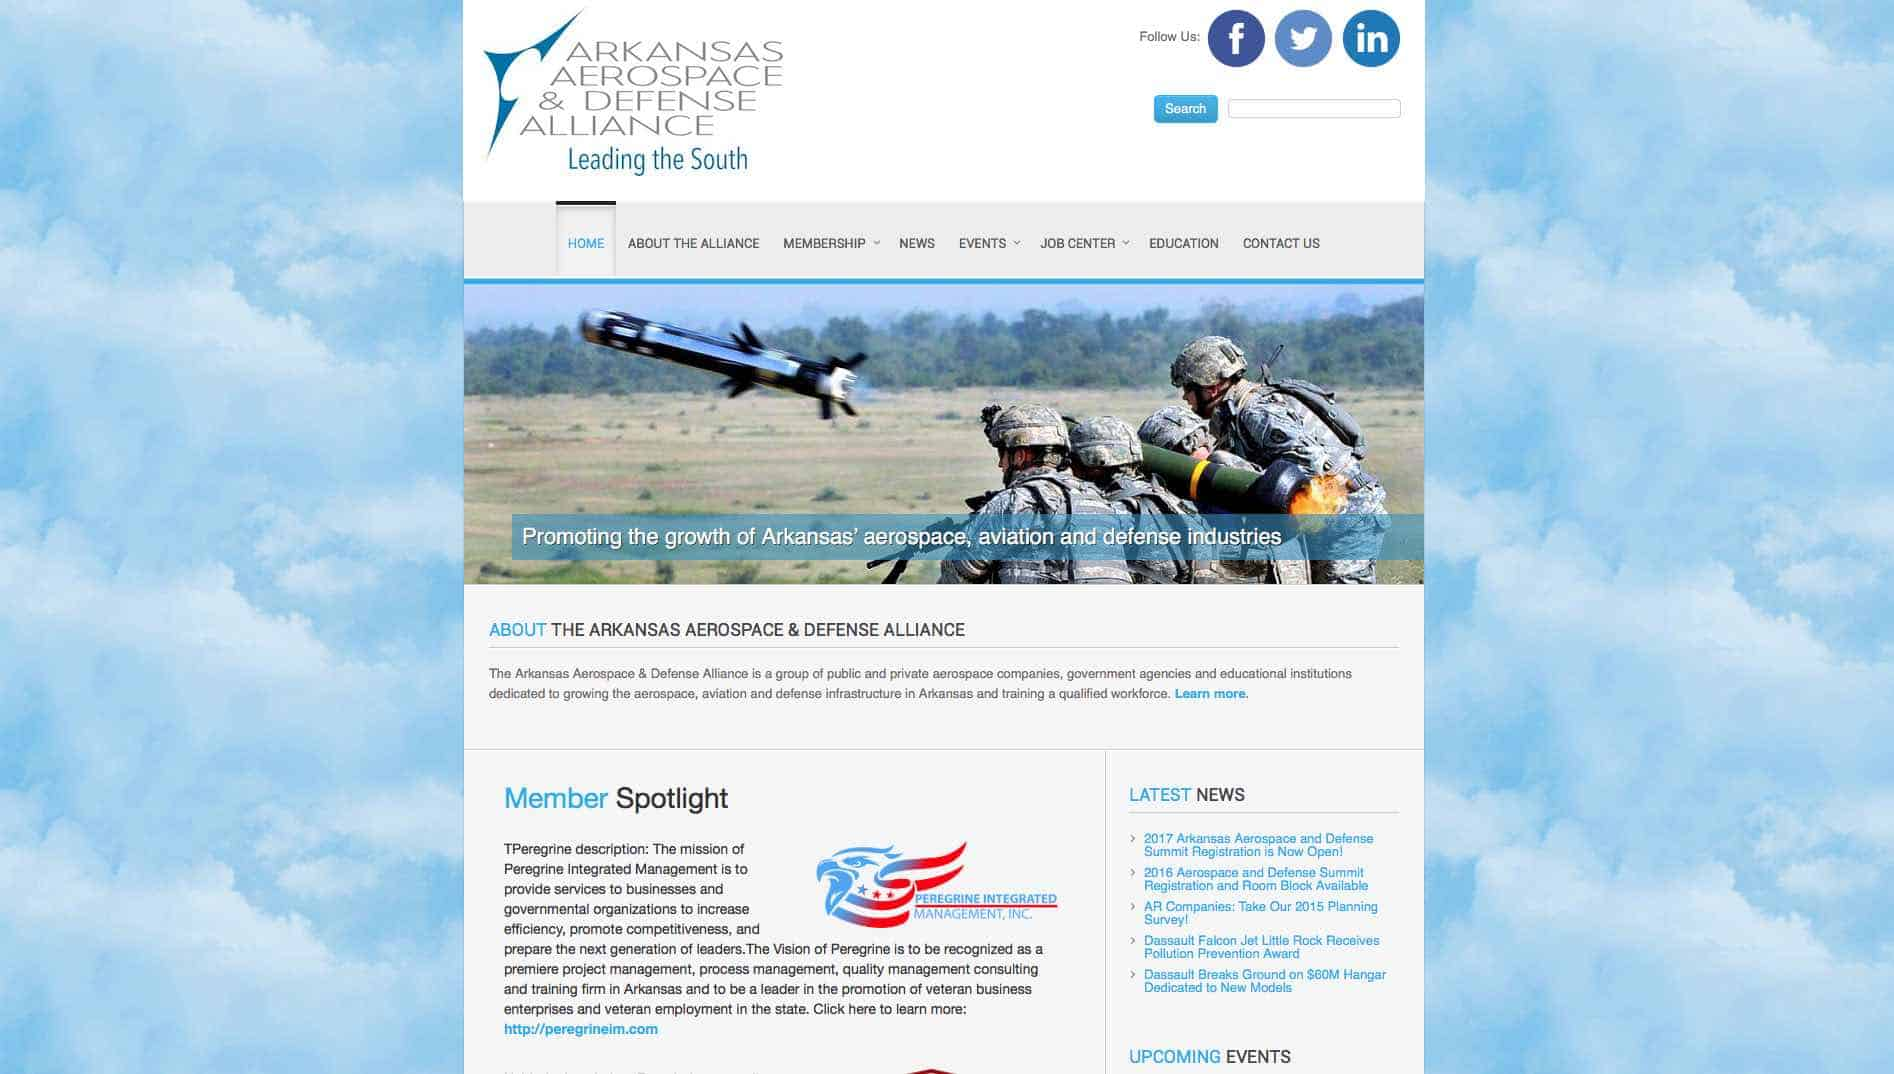 Arkansas Aerospace